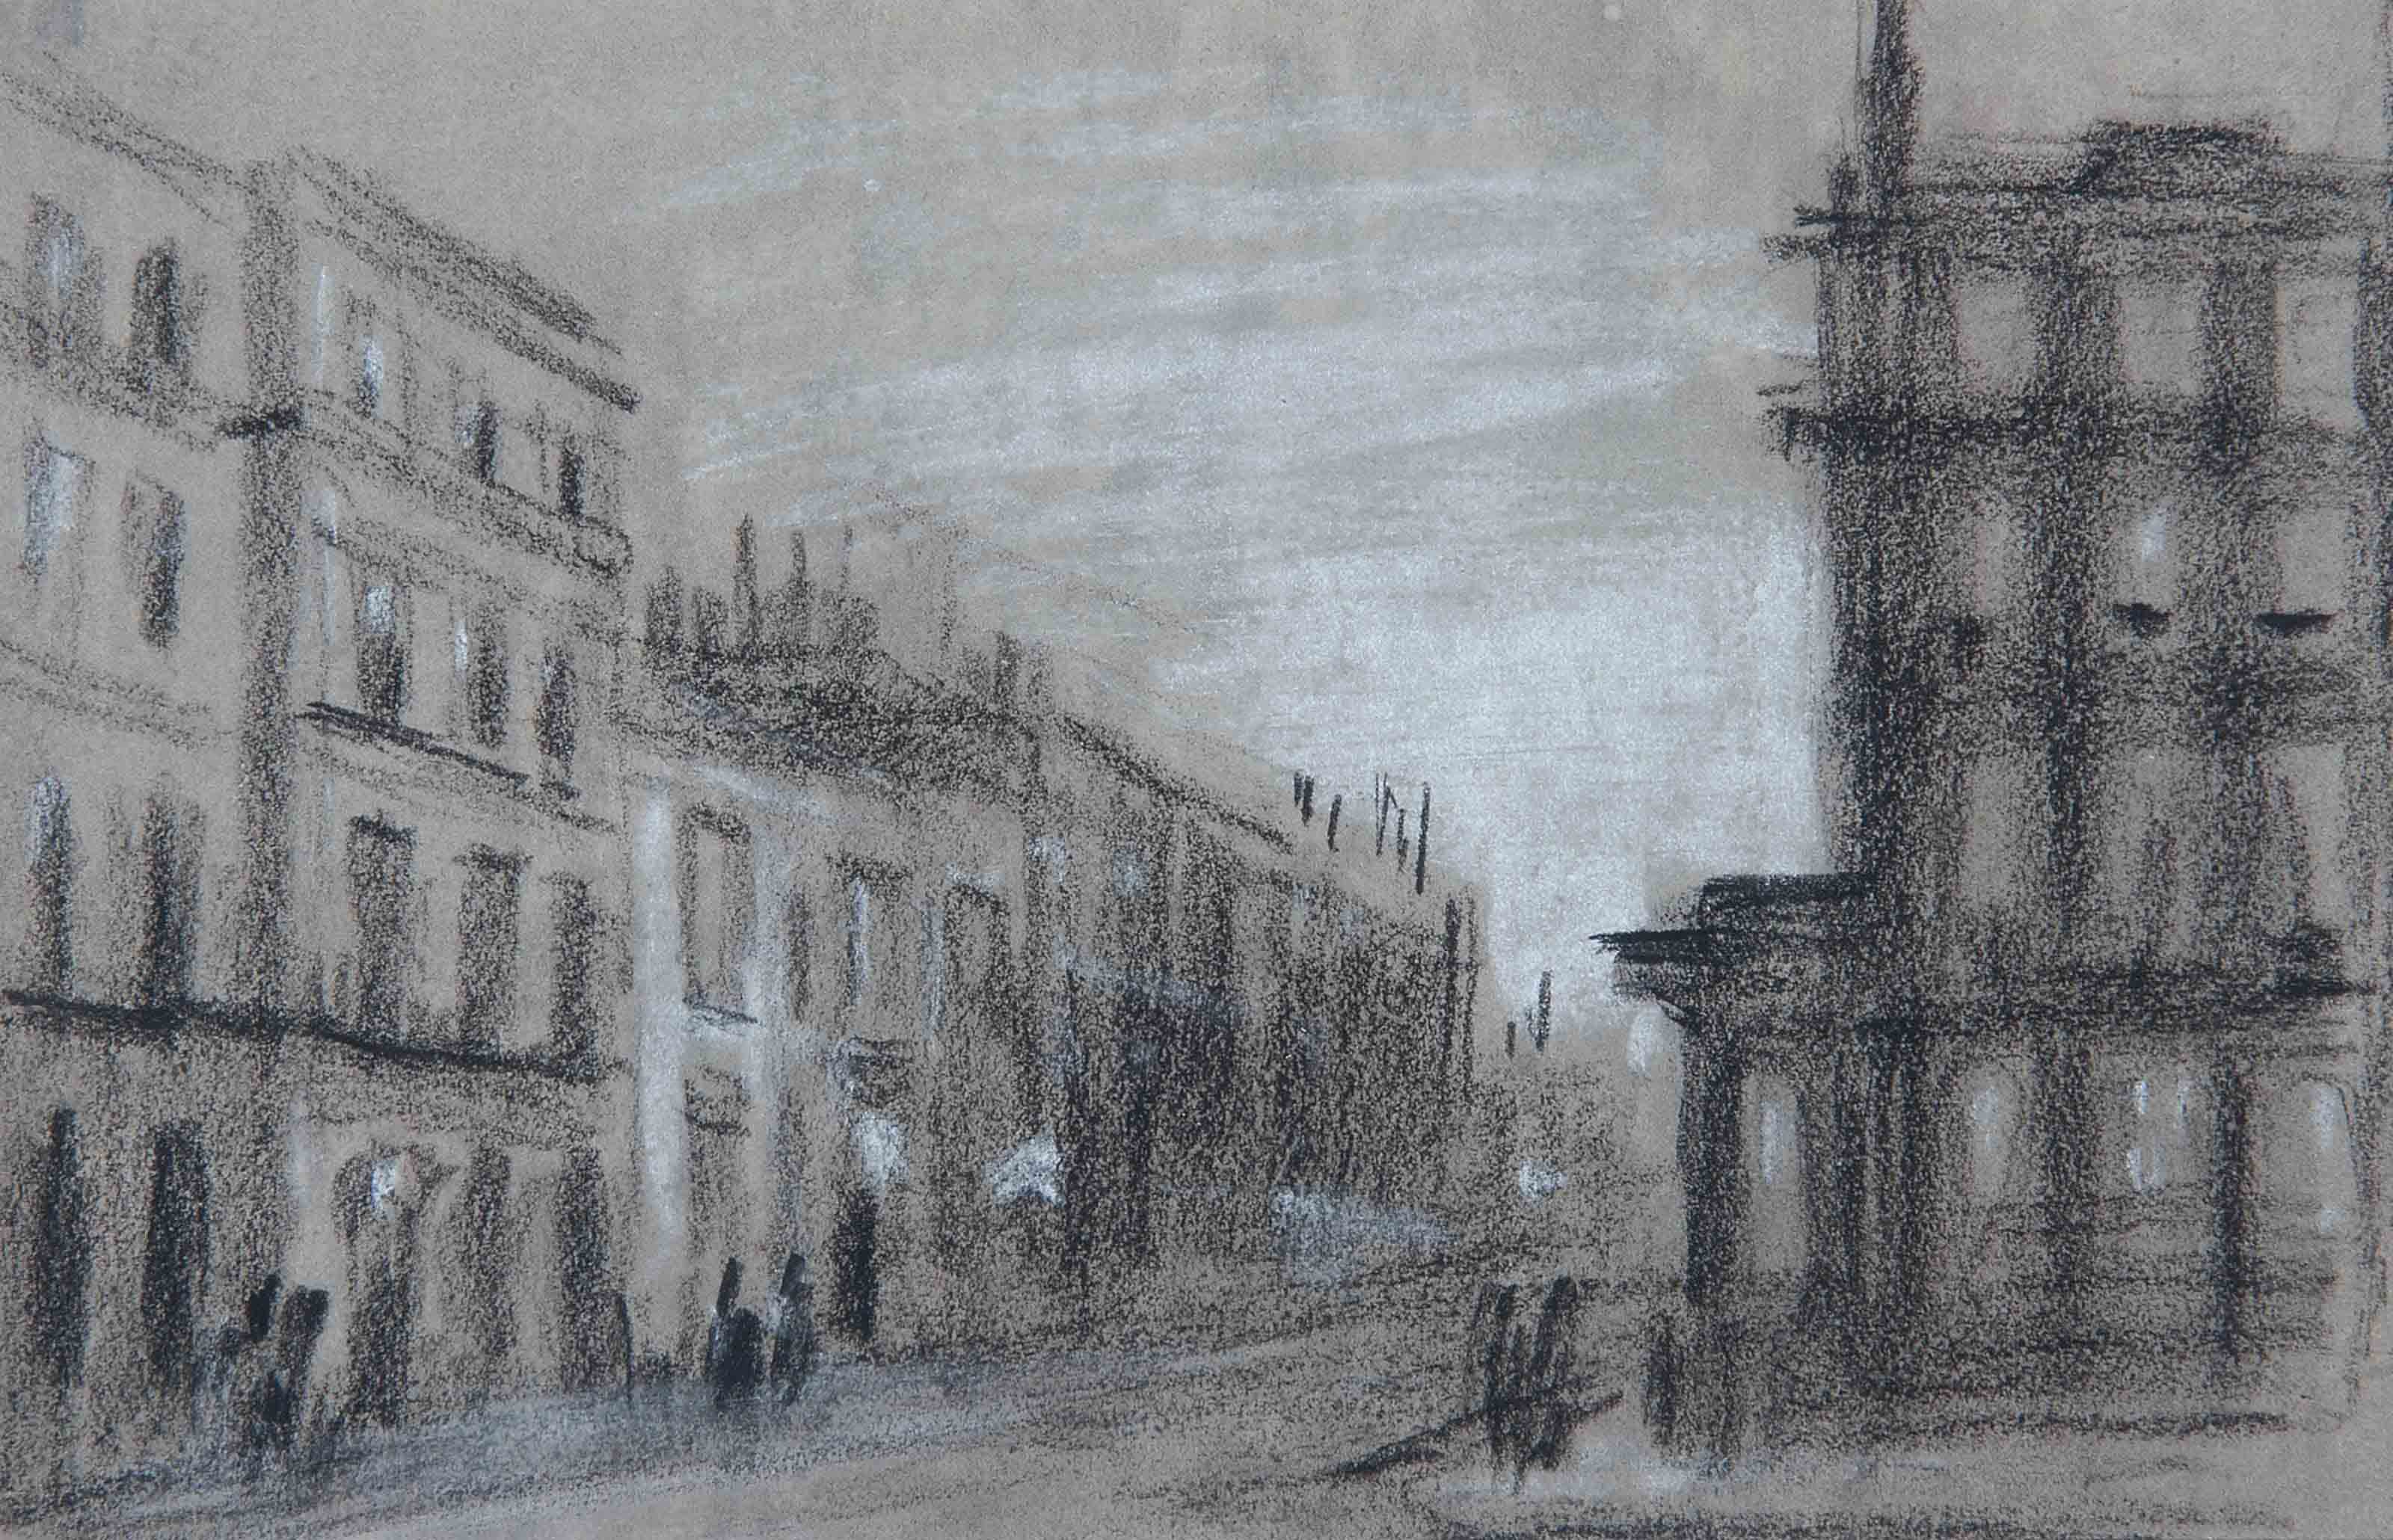 Pall Mall, London (illustrated); and A London street by lamplight